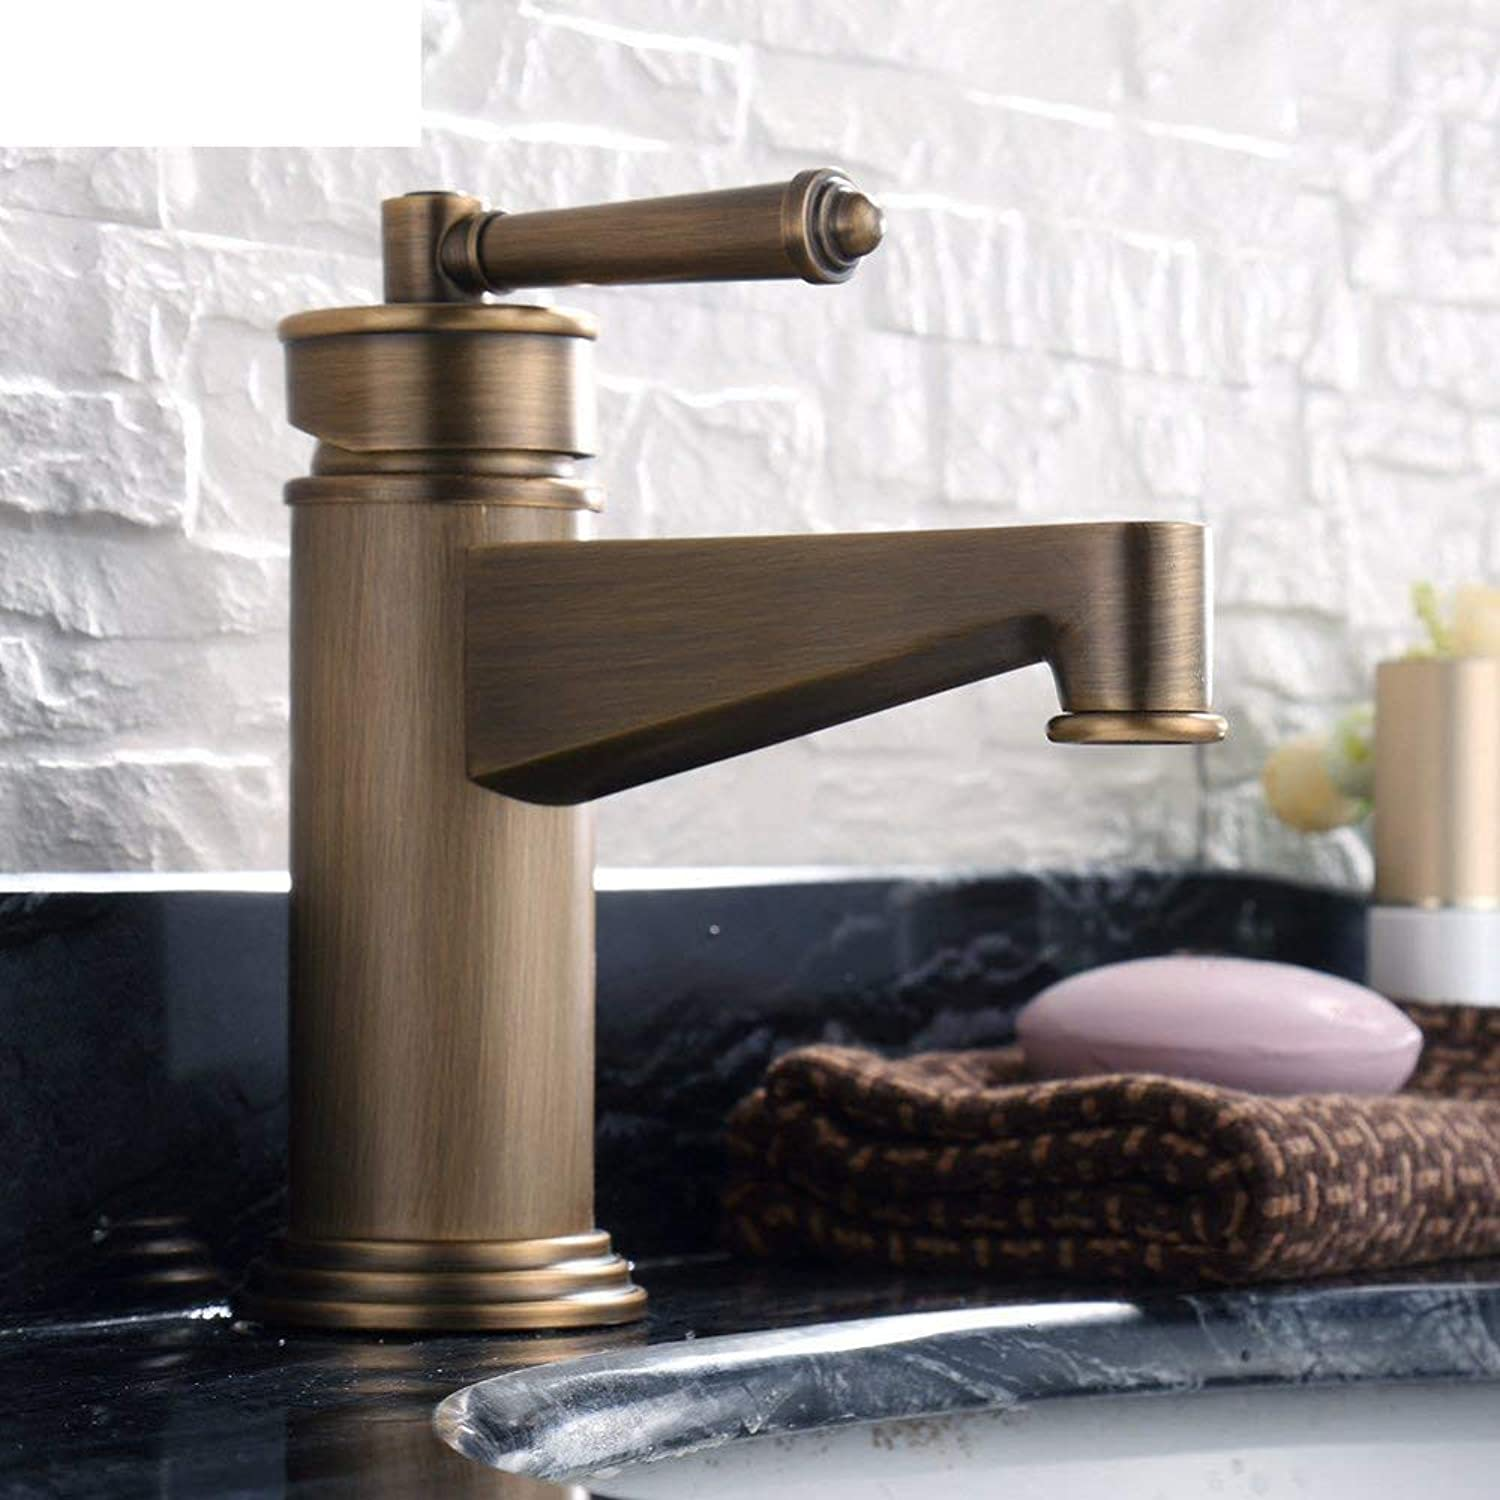 360° redating Faucet Retro Faucet European Antique Full Copper Basin Faucet Hot and Cold Water Counter Basin Faucet